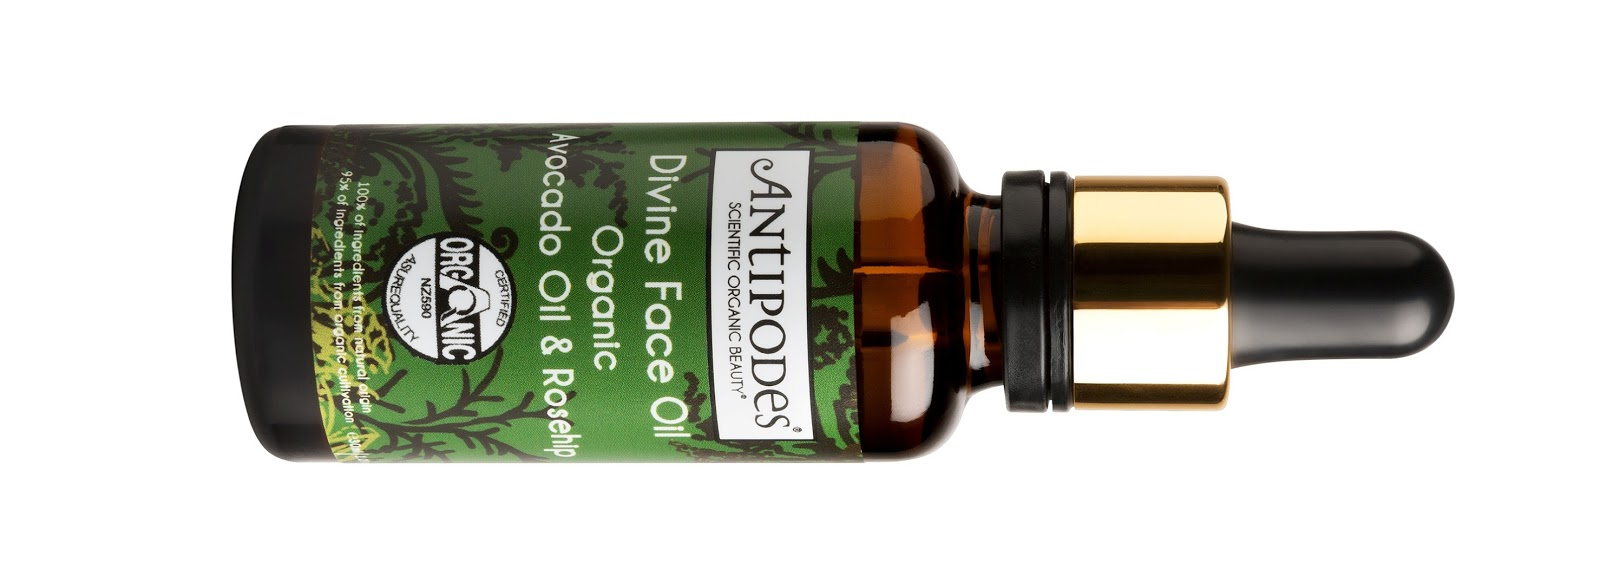 Antipodes Divine Face Oil review